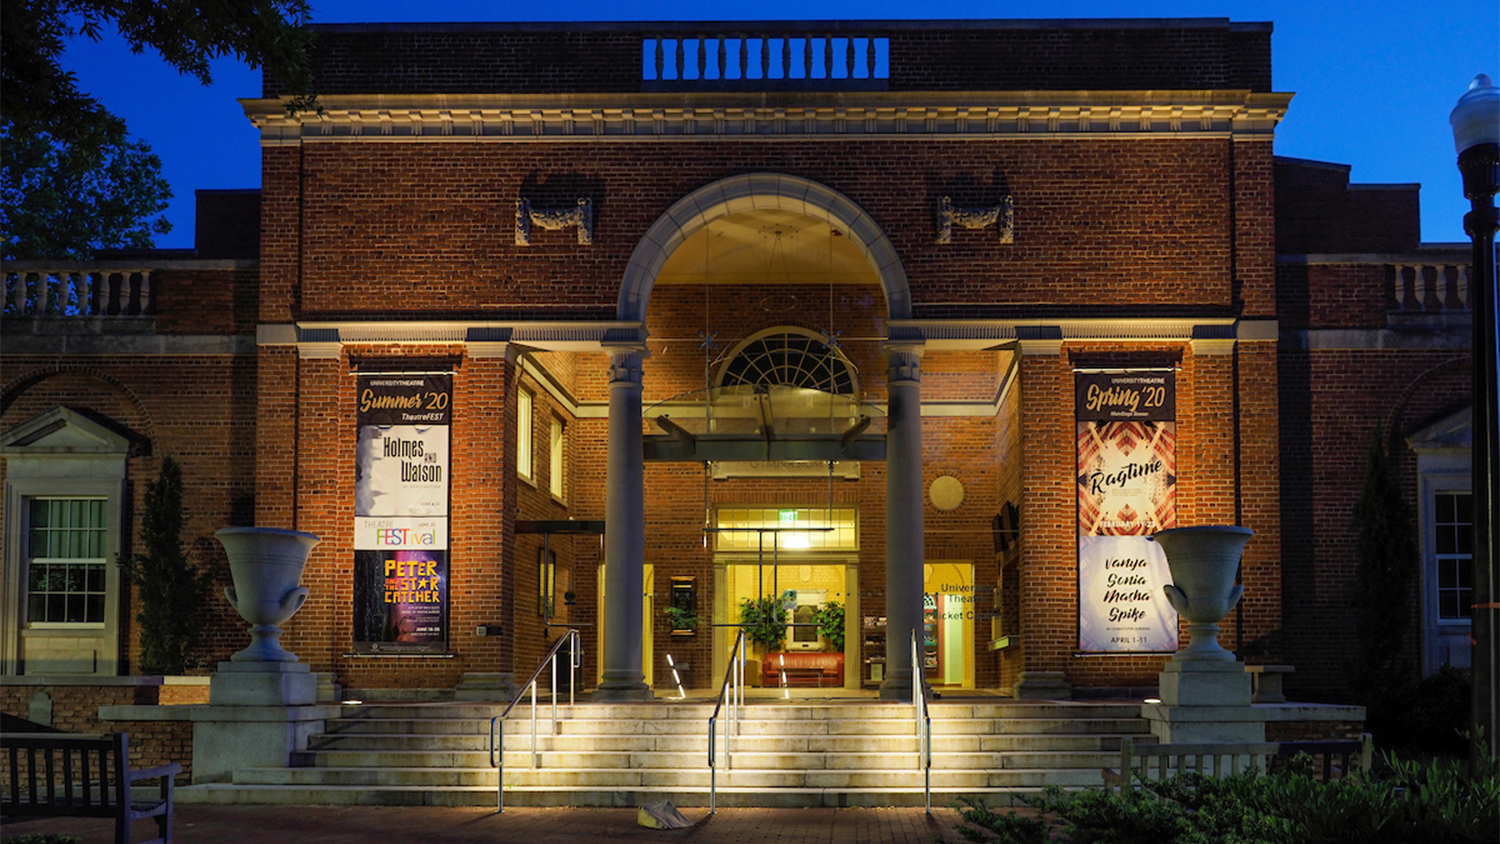 Exterior of Thompson Theatre at night